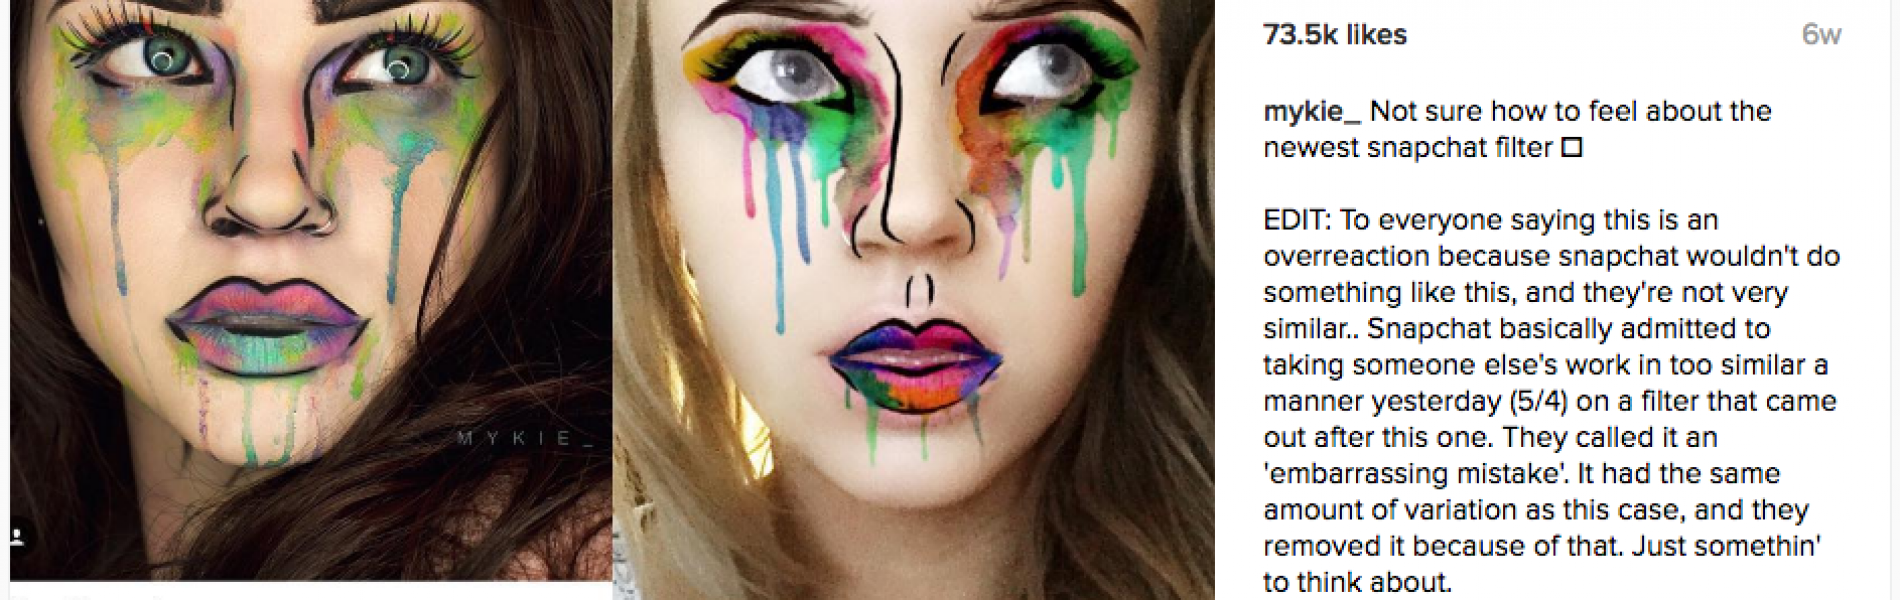 """Swiped"" – Is Snapchat stealing filters from makeup artists?"